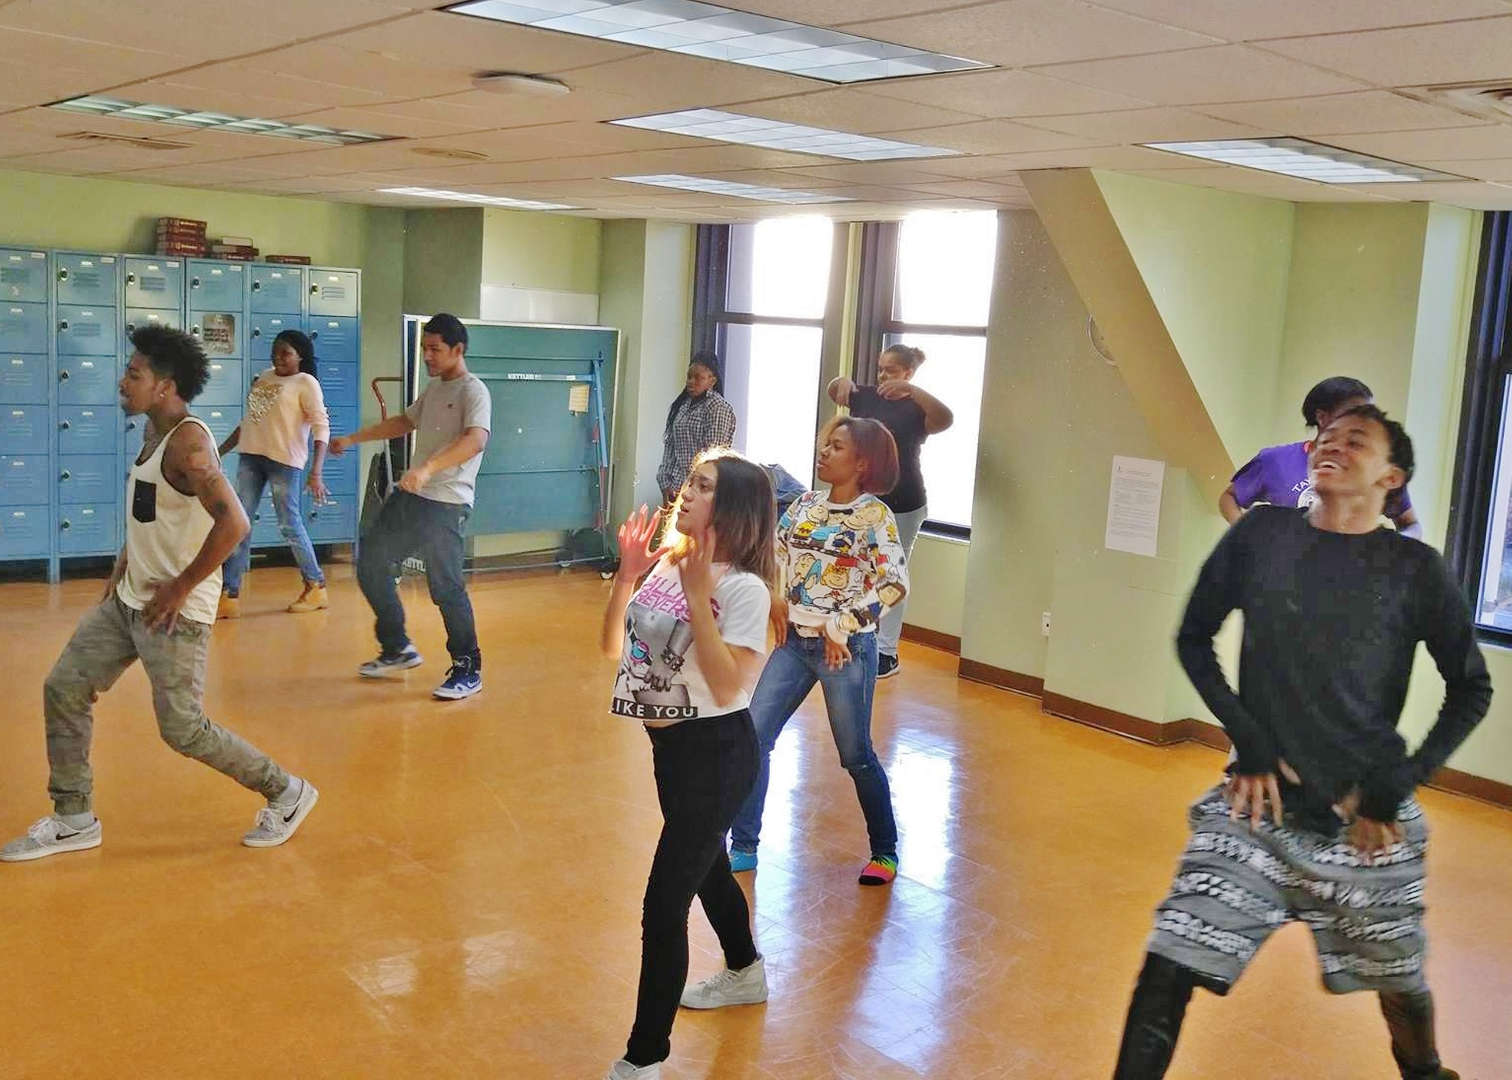 Students learn hot new dance routines every Friday at 3:30 p.m. from professional dancers with Aubrey Lynch Extra Essential Arts.